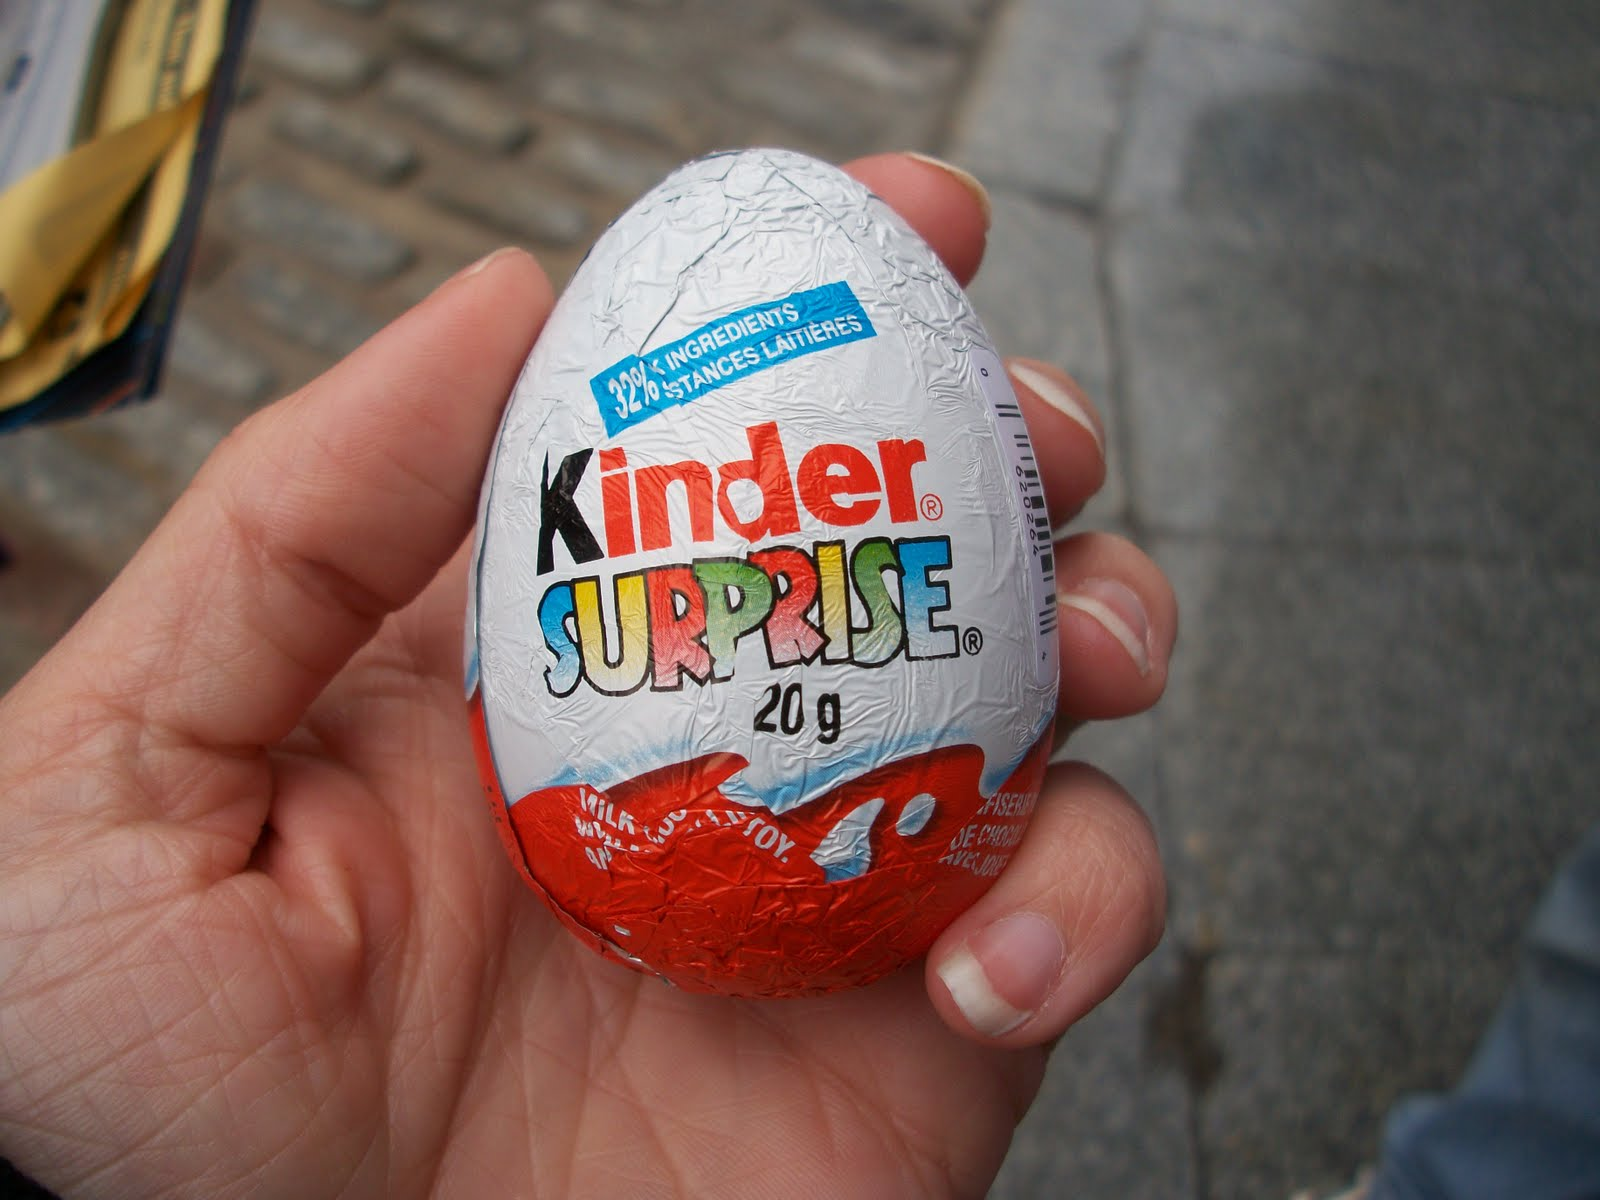 Kinder Egg Illegal Dreams Less Ordinary Kinder Surprise Eggs Childhood In A